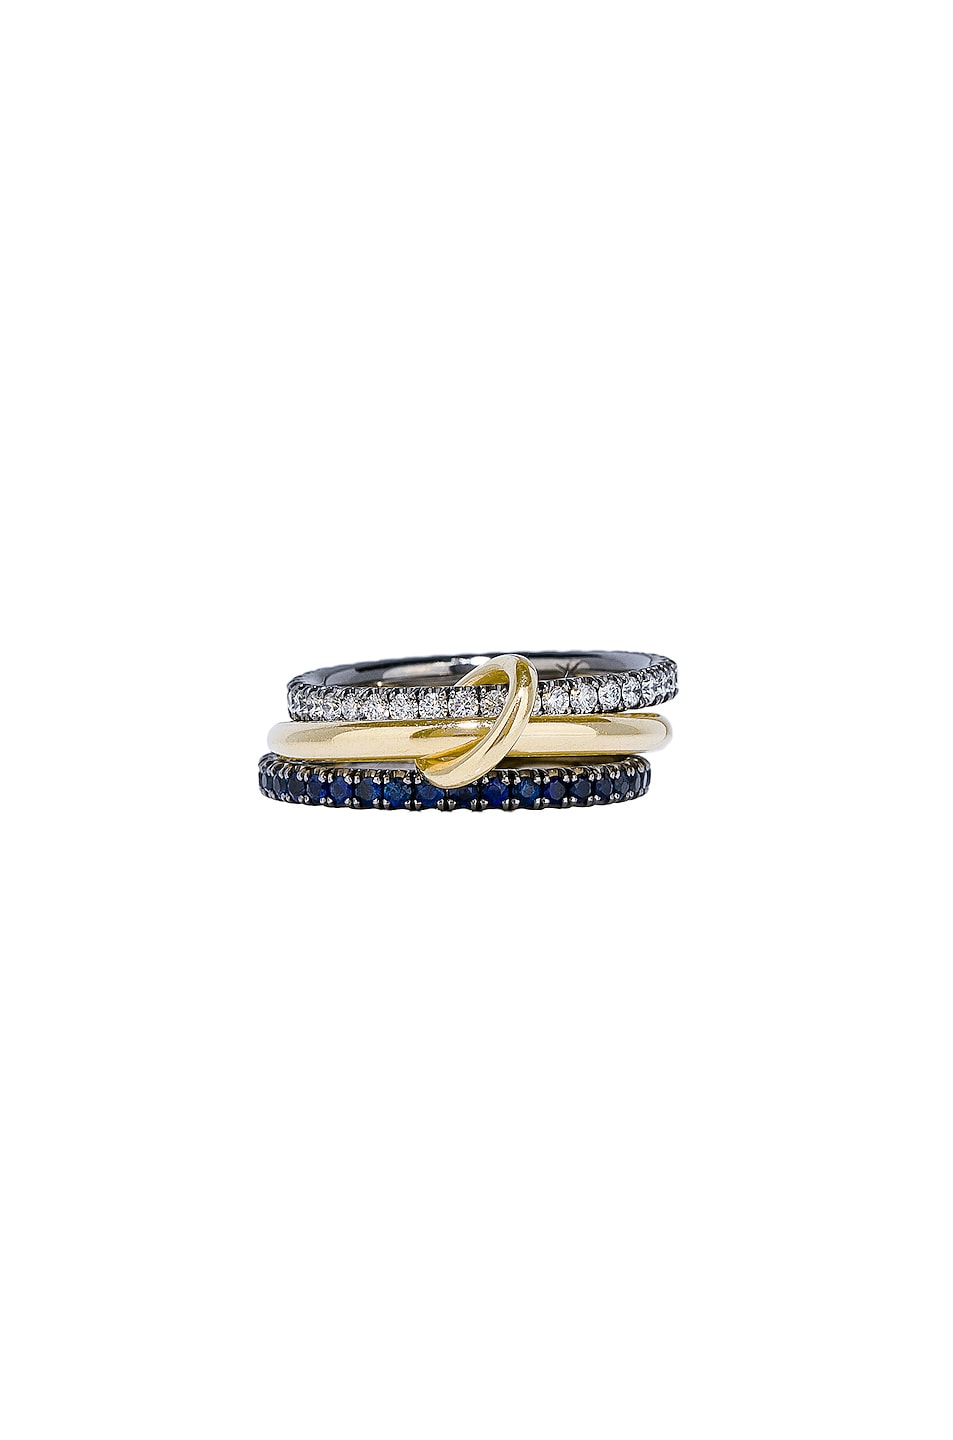 Image 2 of Spinelli Kilcollin Celeste Sapphire Ring in 18K Yellow Gold